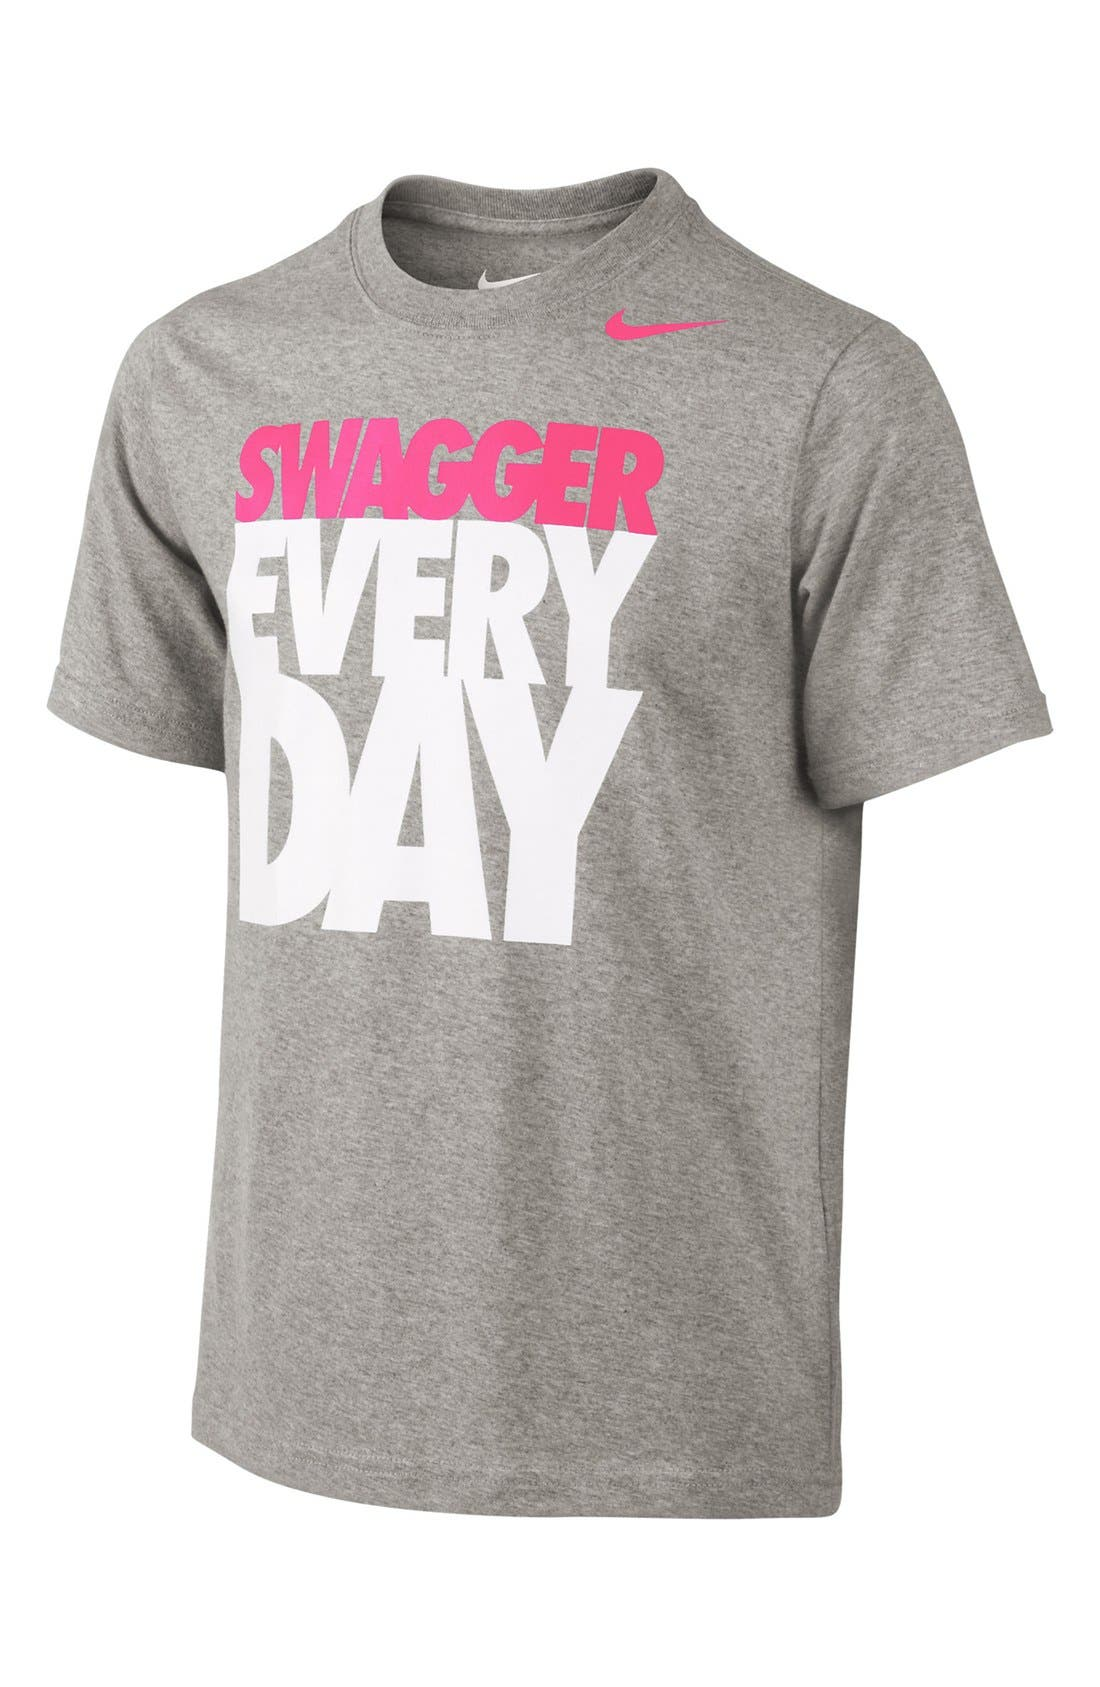 Main Image - Nike 'Swagger Every Day' T-Shirt (Big Boys)